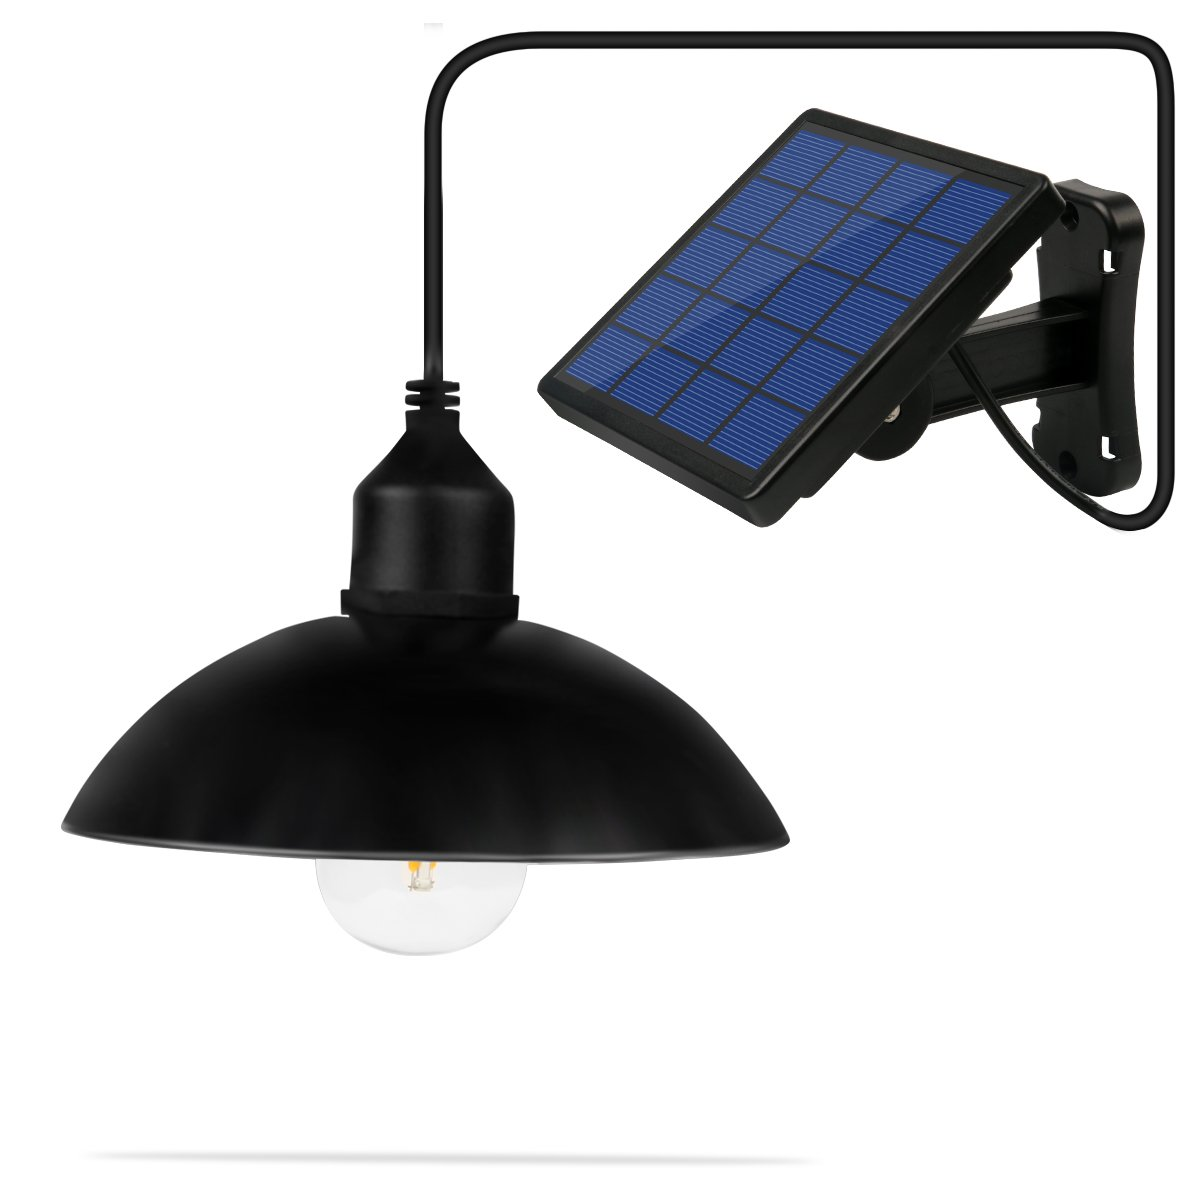 NINGZEXIN Metal Shade Outdoor Hanging solar powered Pendant Light E27 Industrial Edison Bulb LED Shed Light Black Pendant Lamp With Changeable Solar Panel for Garden Yard Patio Balcony Home Decorate by NINGZEXIN